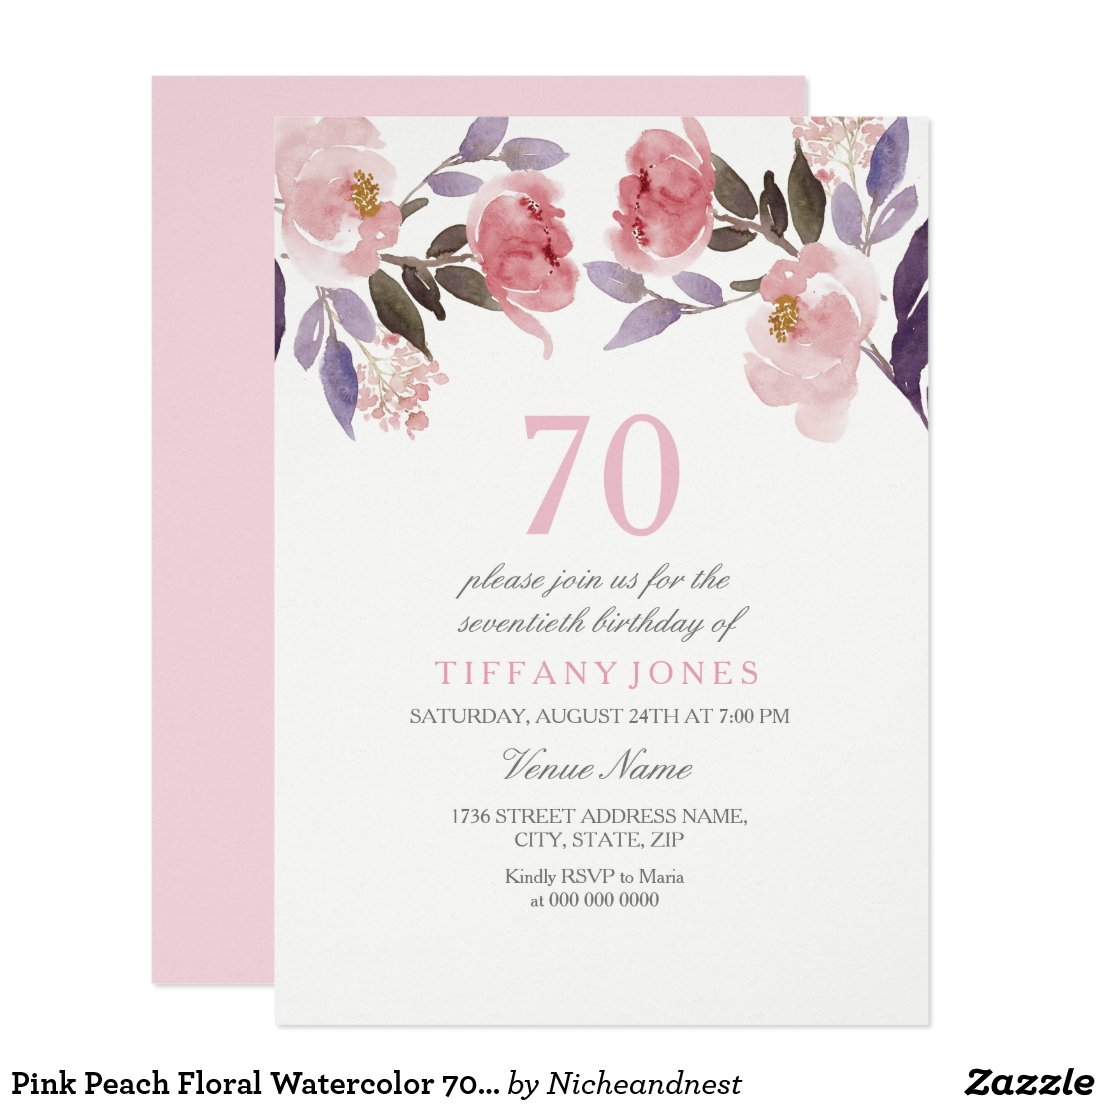 Pink Peach Floral Watercolor 70th Birthday Invite